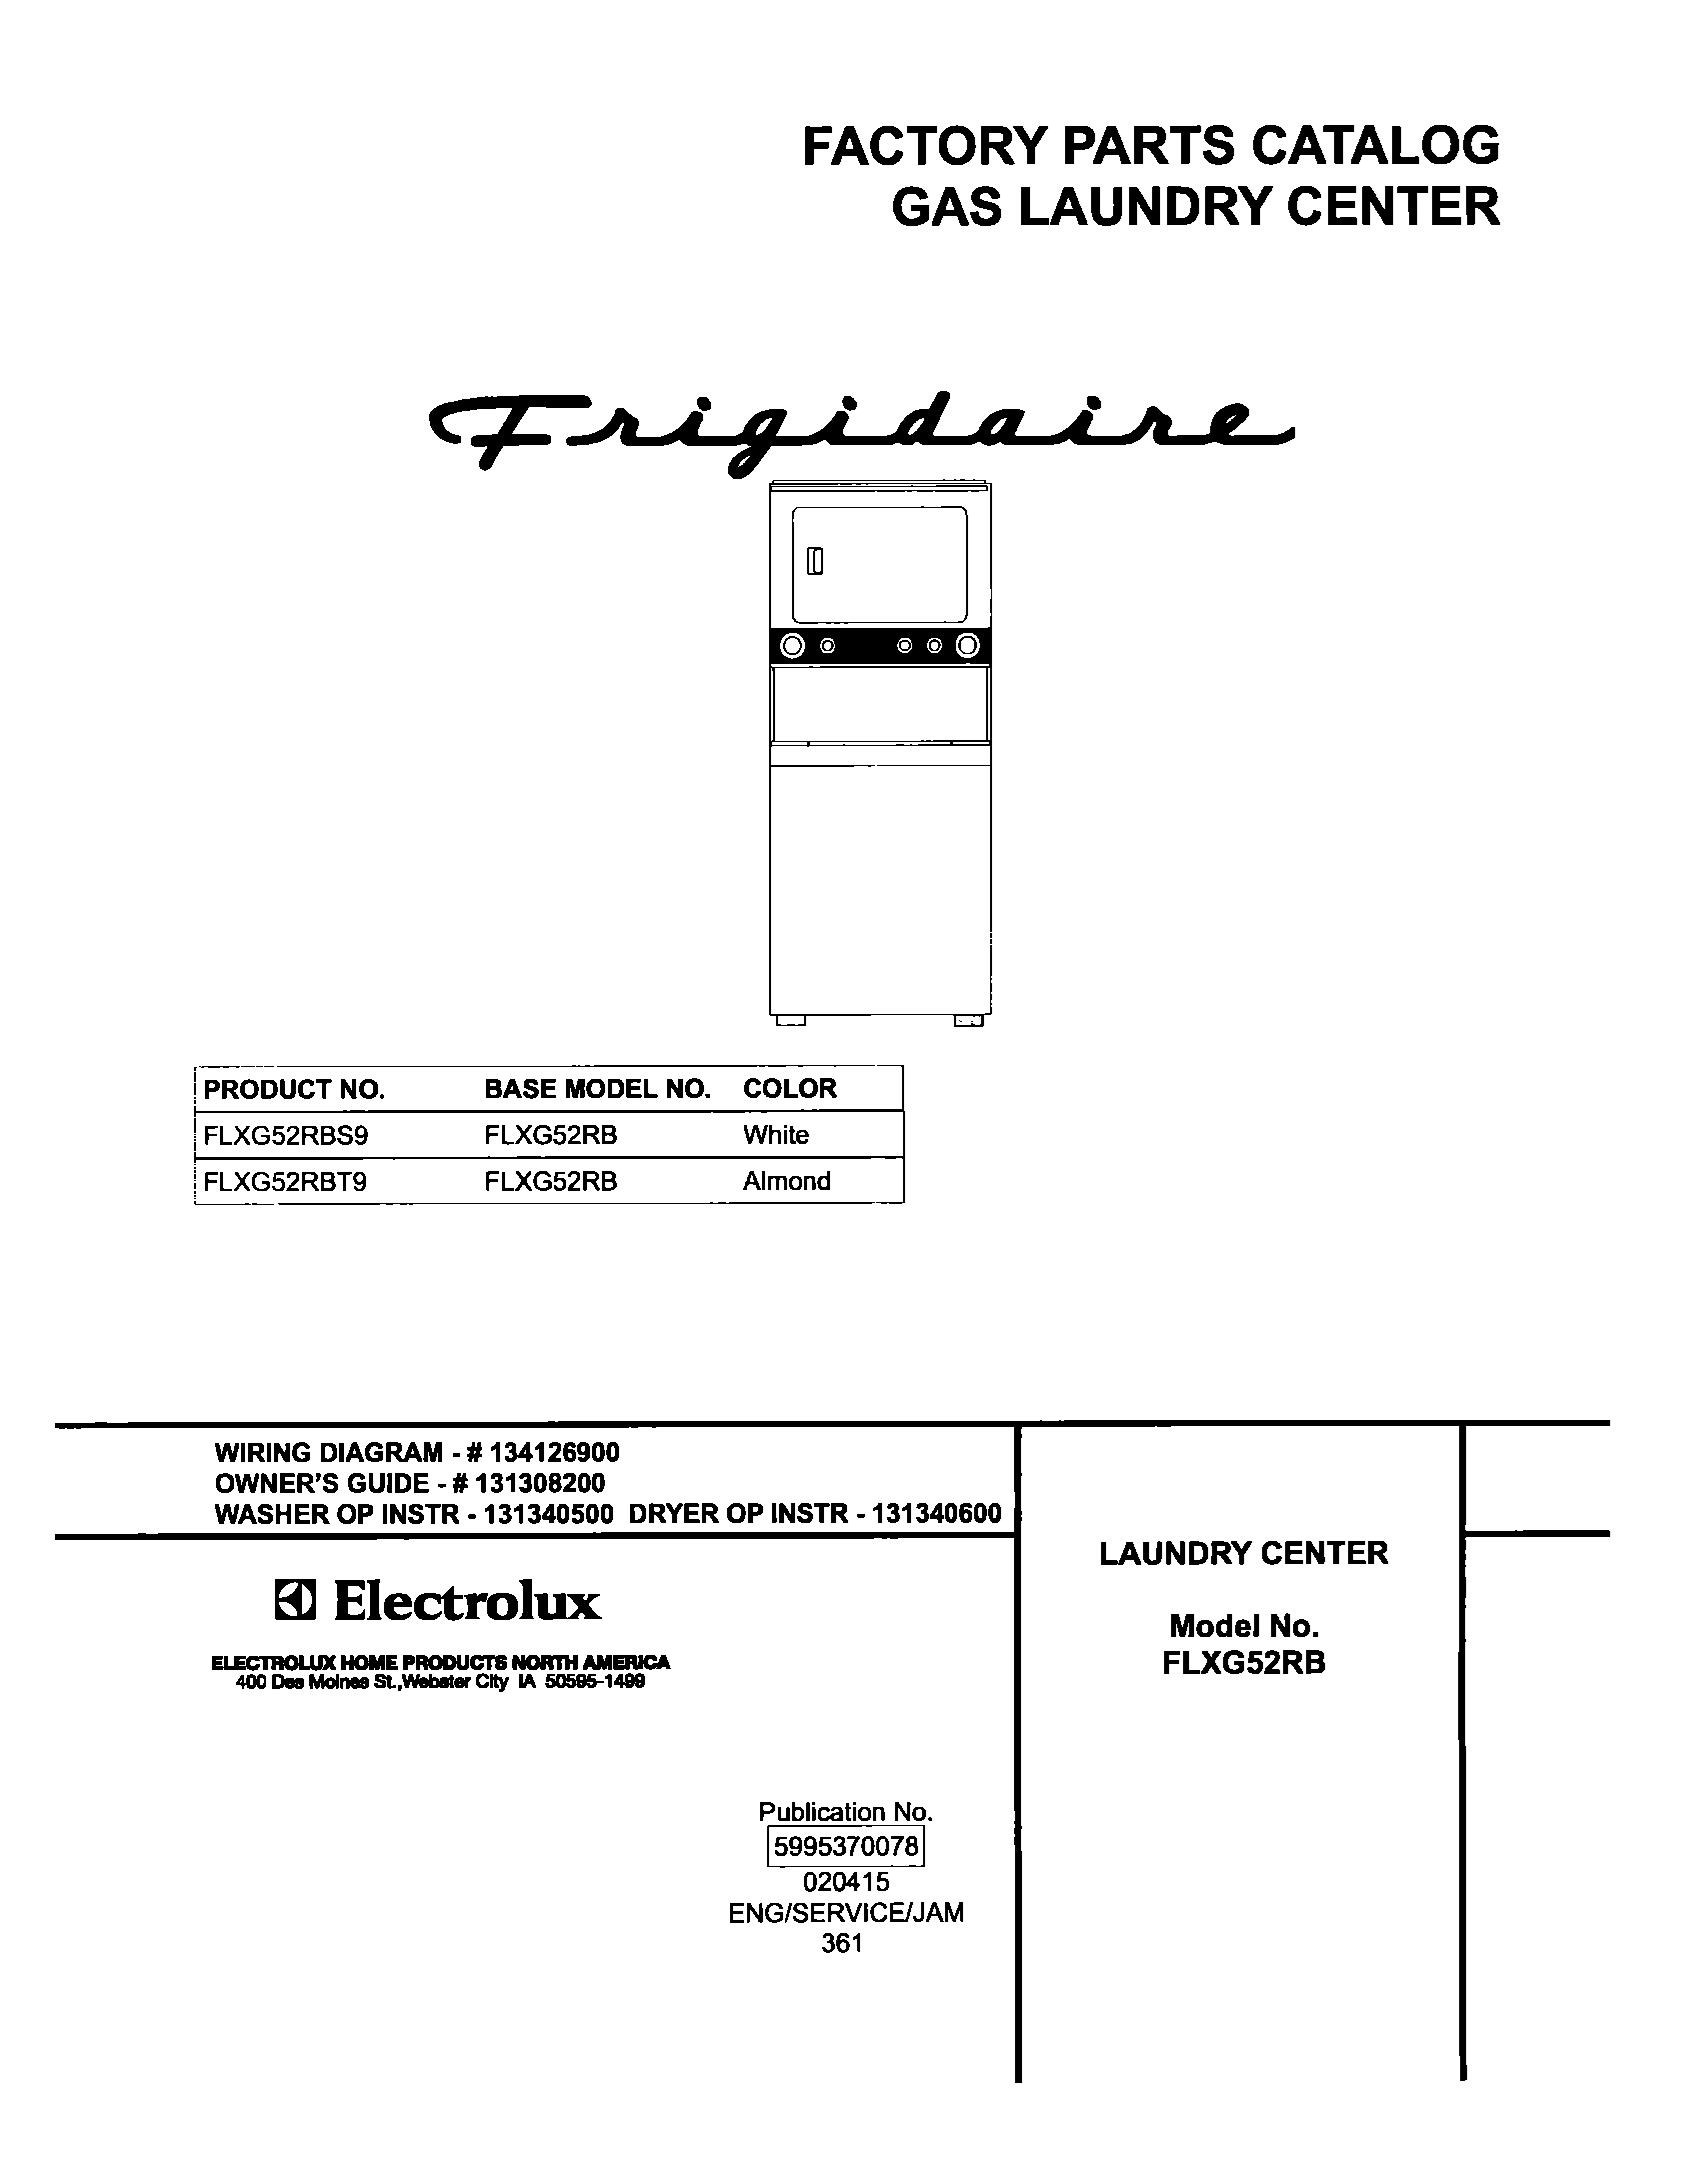 Electrolux wiring diagrams operations flow diagram comfortable electrolux 2100 wiring diagram ideas electrical electroluximg 19000101 20150717 00082082 electrolux 2100 wiring diagram swarovskicordoba Image collections